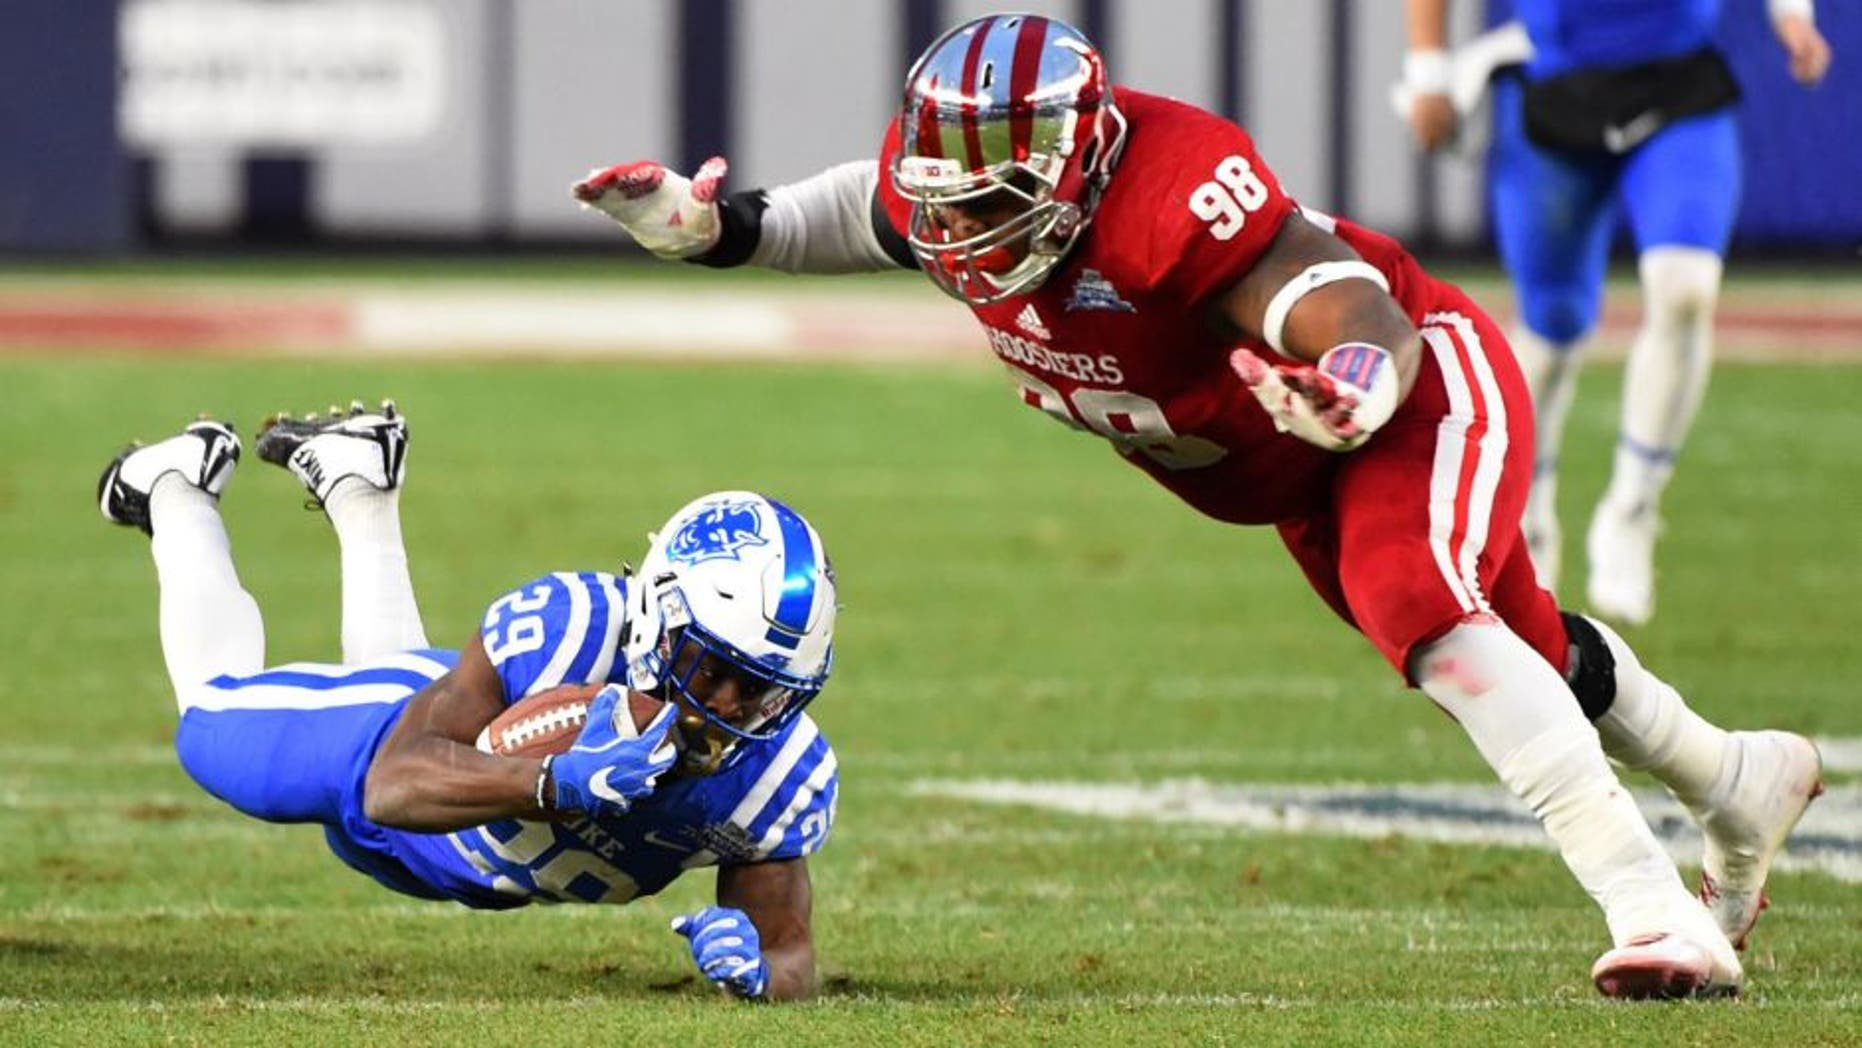 Dec 26, 2015; Bronx, NY, USA; Duke Blue Devils running back Shaun Wilson (29) dives for extra yards as Indiana Hoosiers defensive lineman Darius Latham (98) defends during the first quarter in the 2015 New Era Pinstripe Bowl at Yankee Stadium. Mandatory Credit: Rich Barnes-USA TODAY Sports